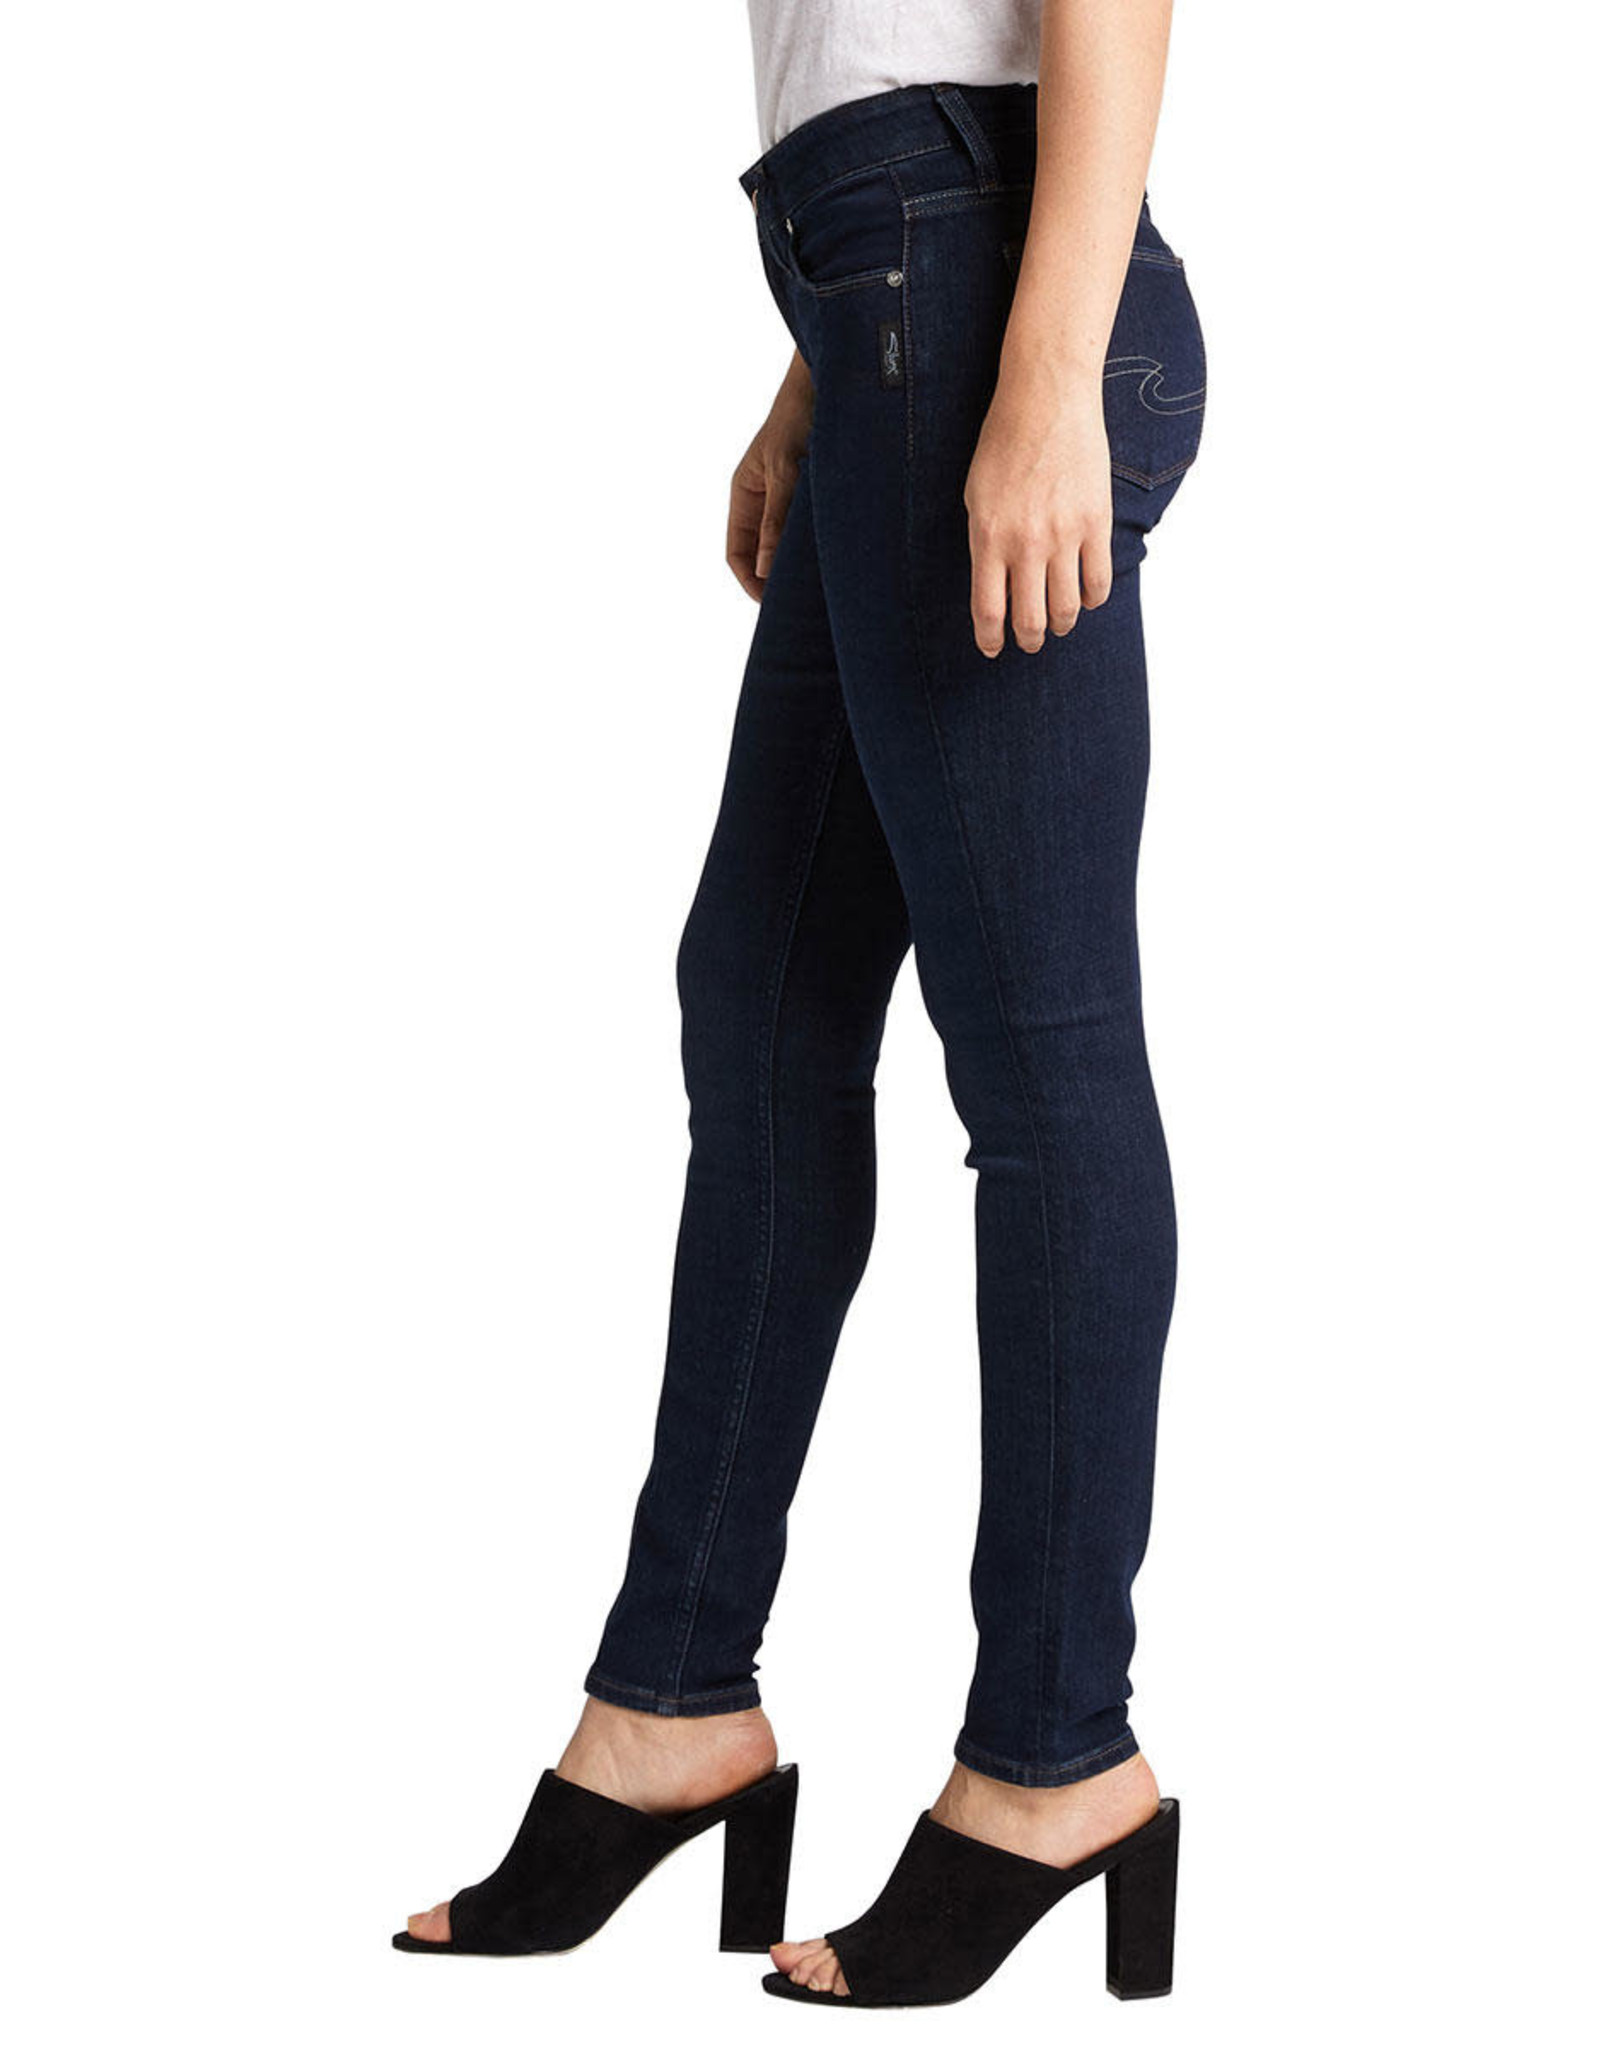 Silver Brand Jeans Avery Skinny Indigo Jeans. High Rise. Front Leg Seam Detail.